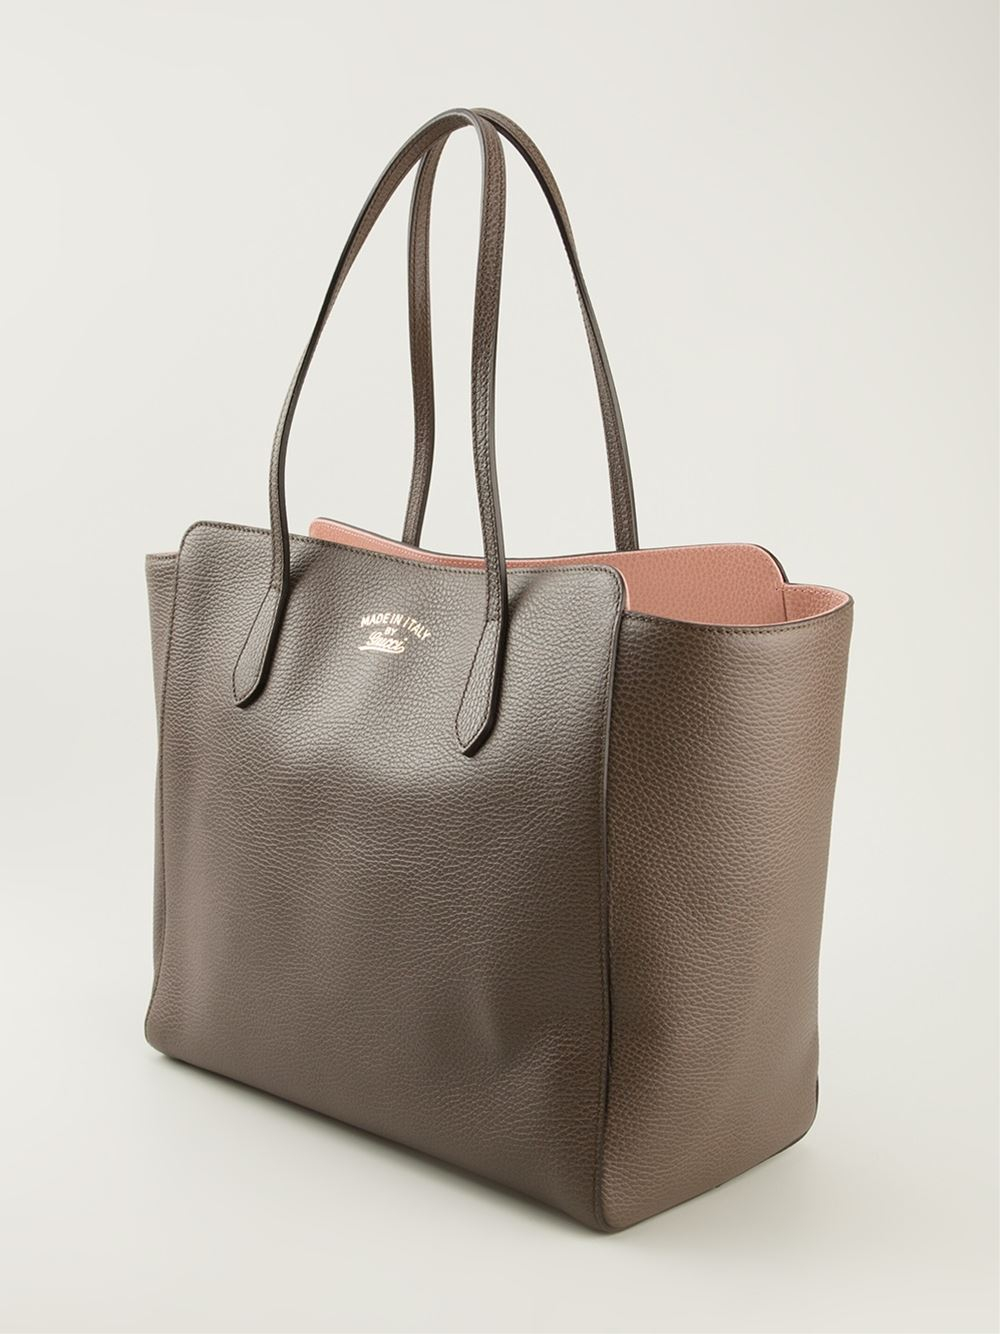 93bf00ae5ea Lyst - Gucci Swing Tote in Brown